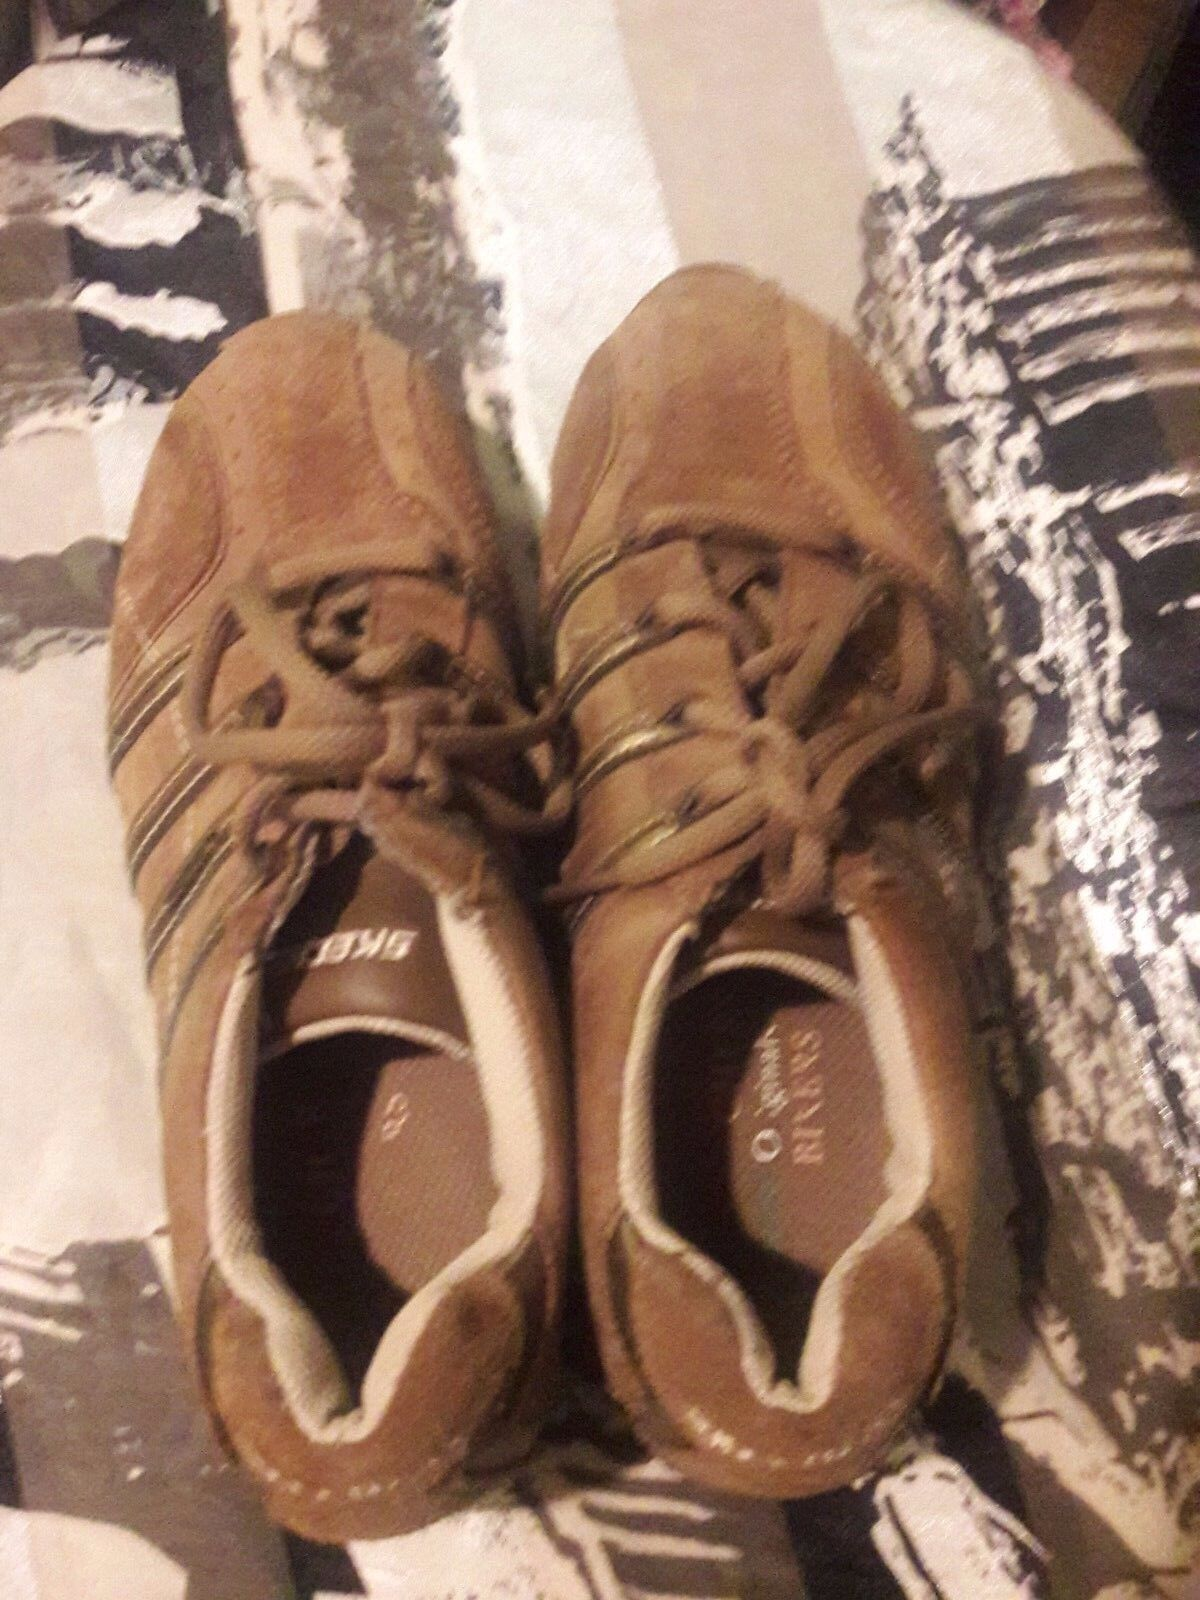 SKECHERS BROWN SUEDE ATHLETIC SHOES SIZE 6M Casual wild